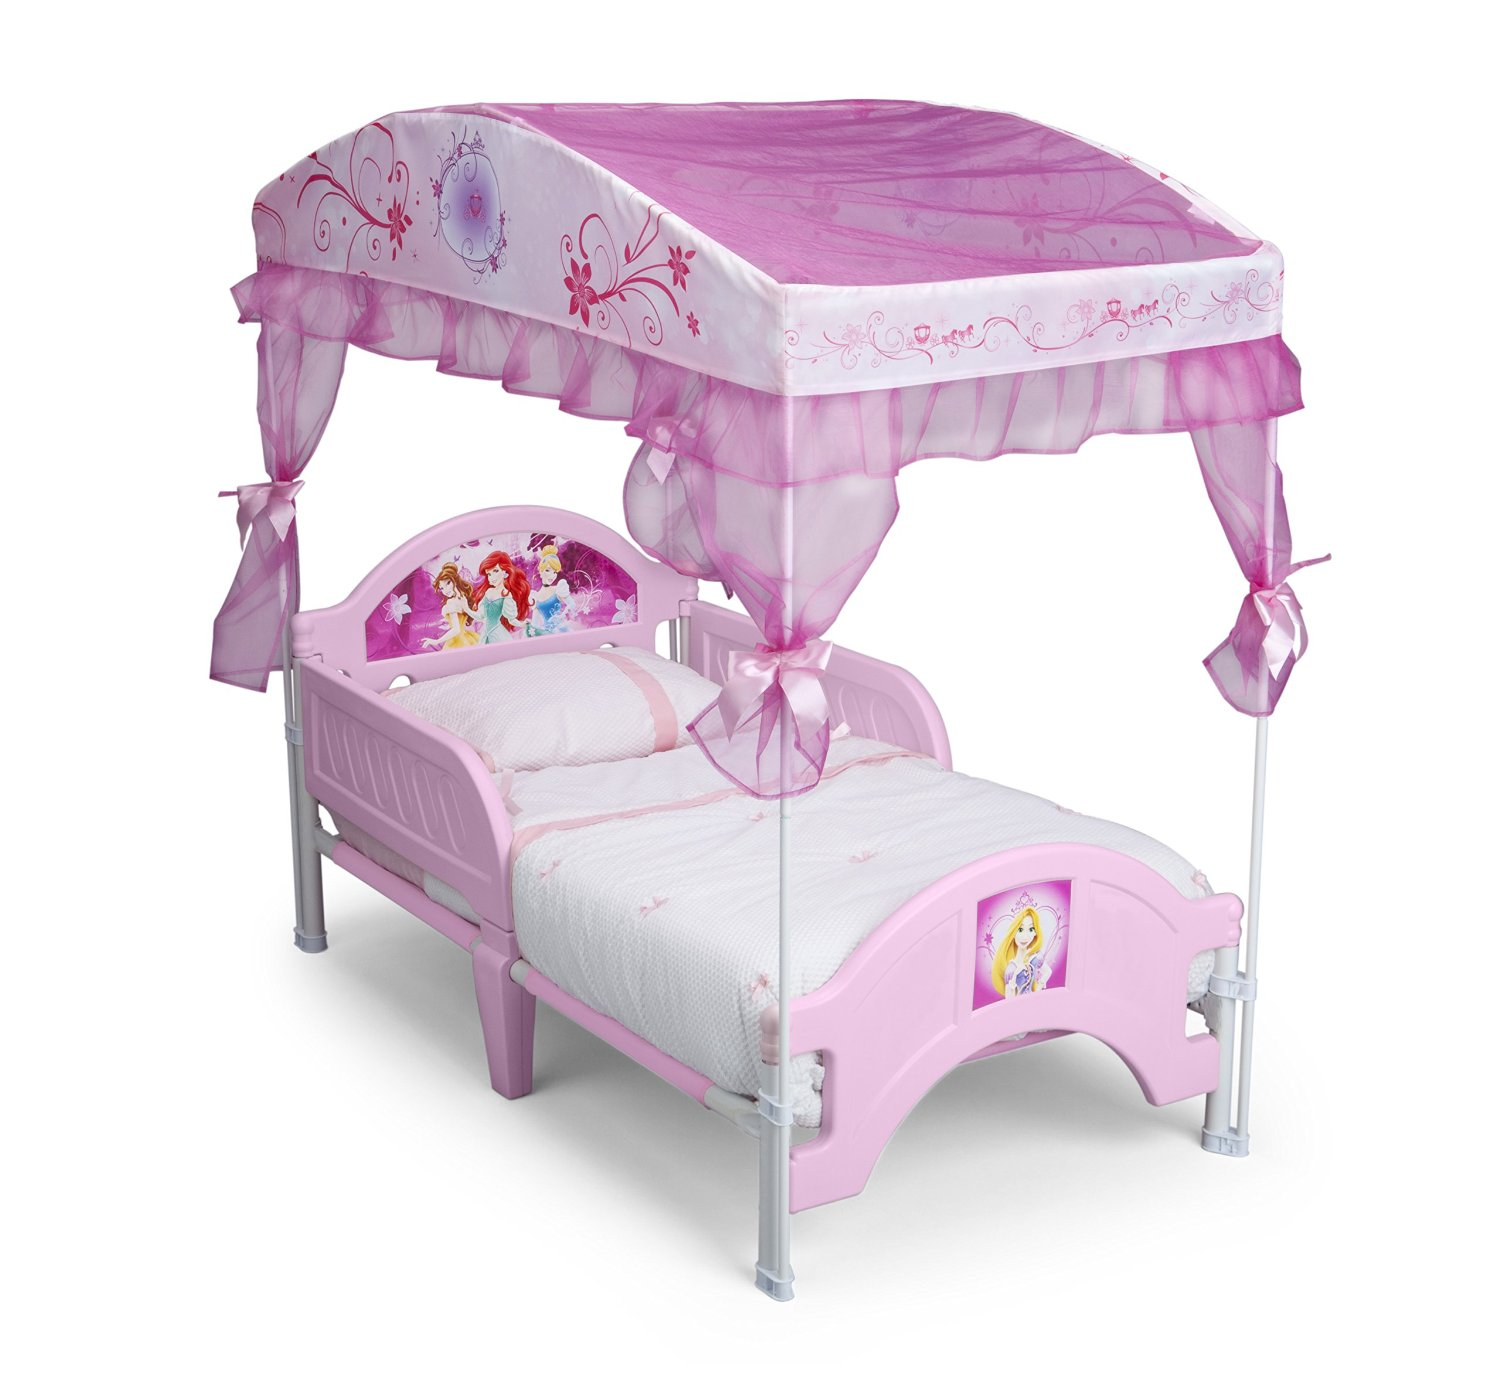 princess bed with canopy sc 1 st cool toddler beds review. Black Bedroom Furniture Sets. Home Design Ideas